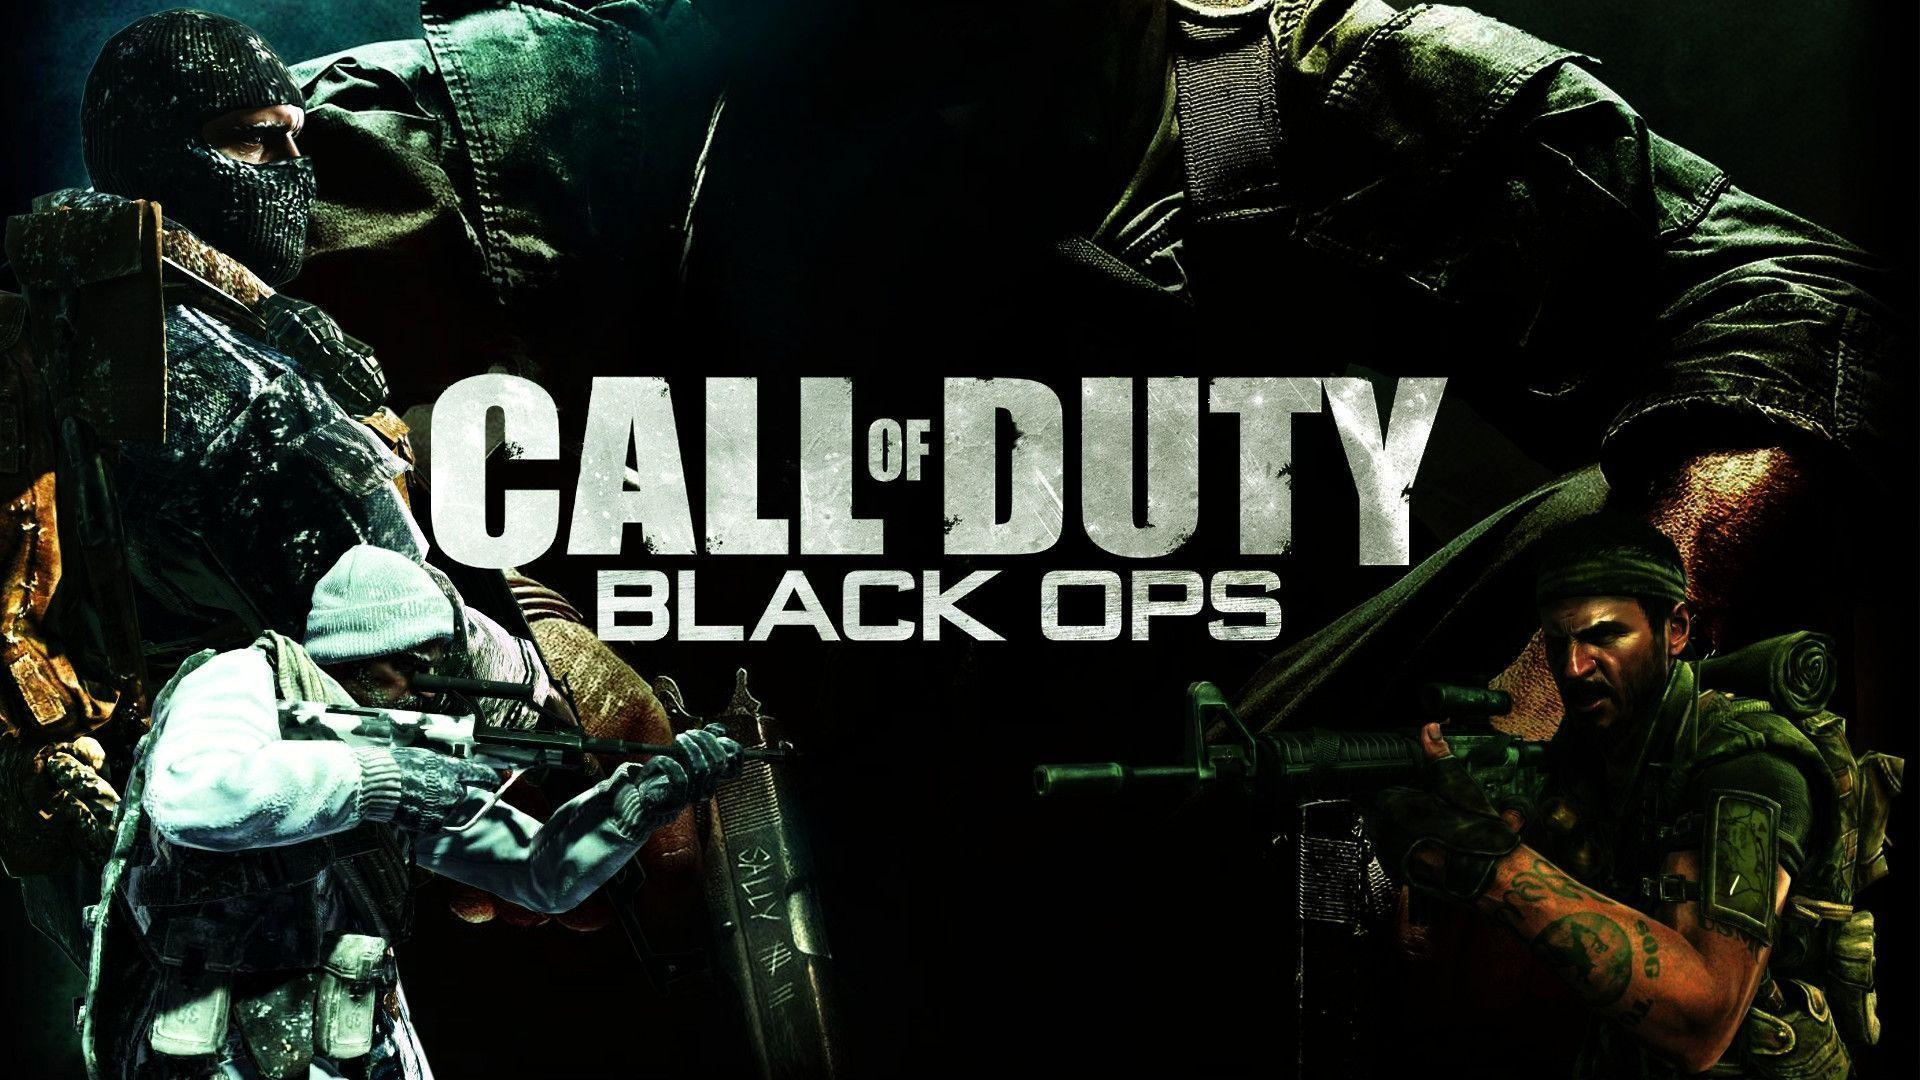 Black Ops Hd Wallpapers Wallpaper Cave